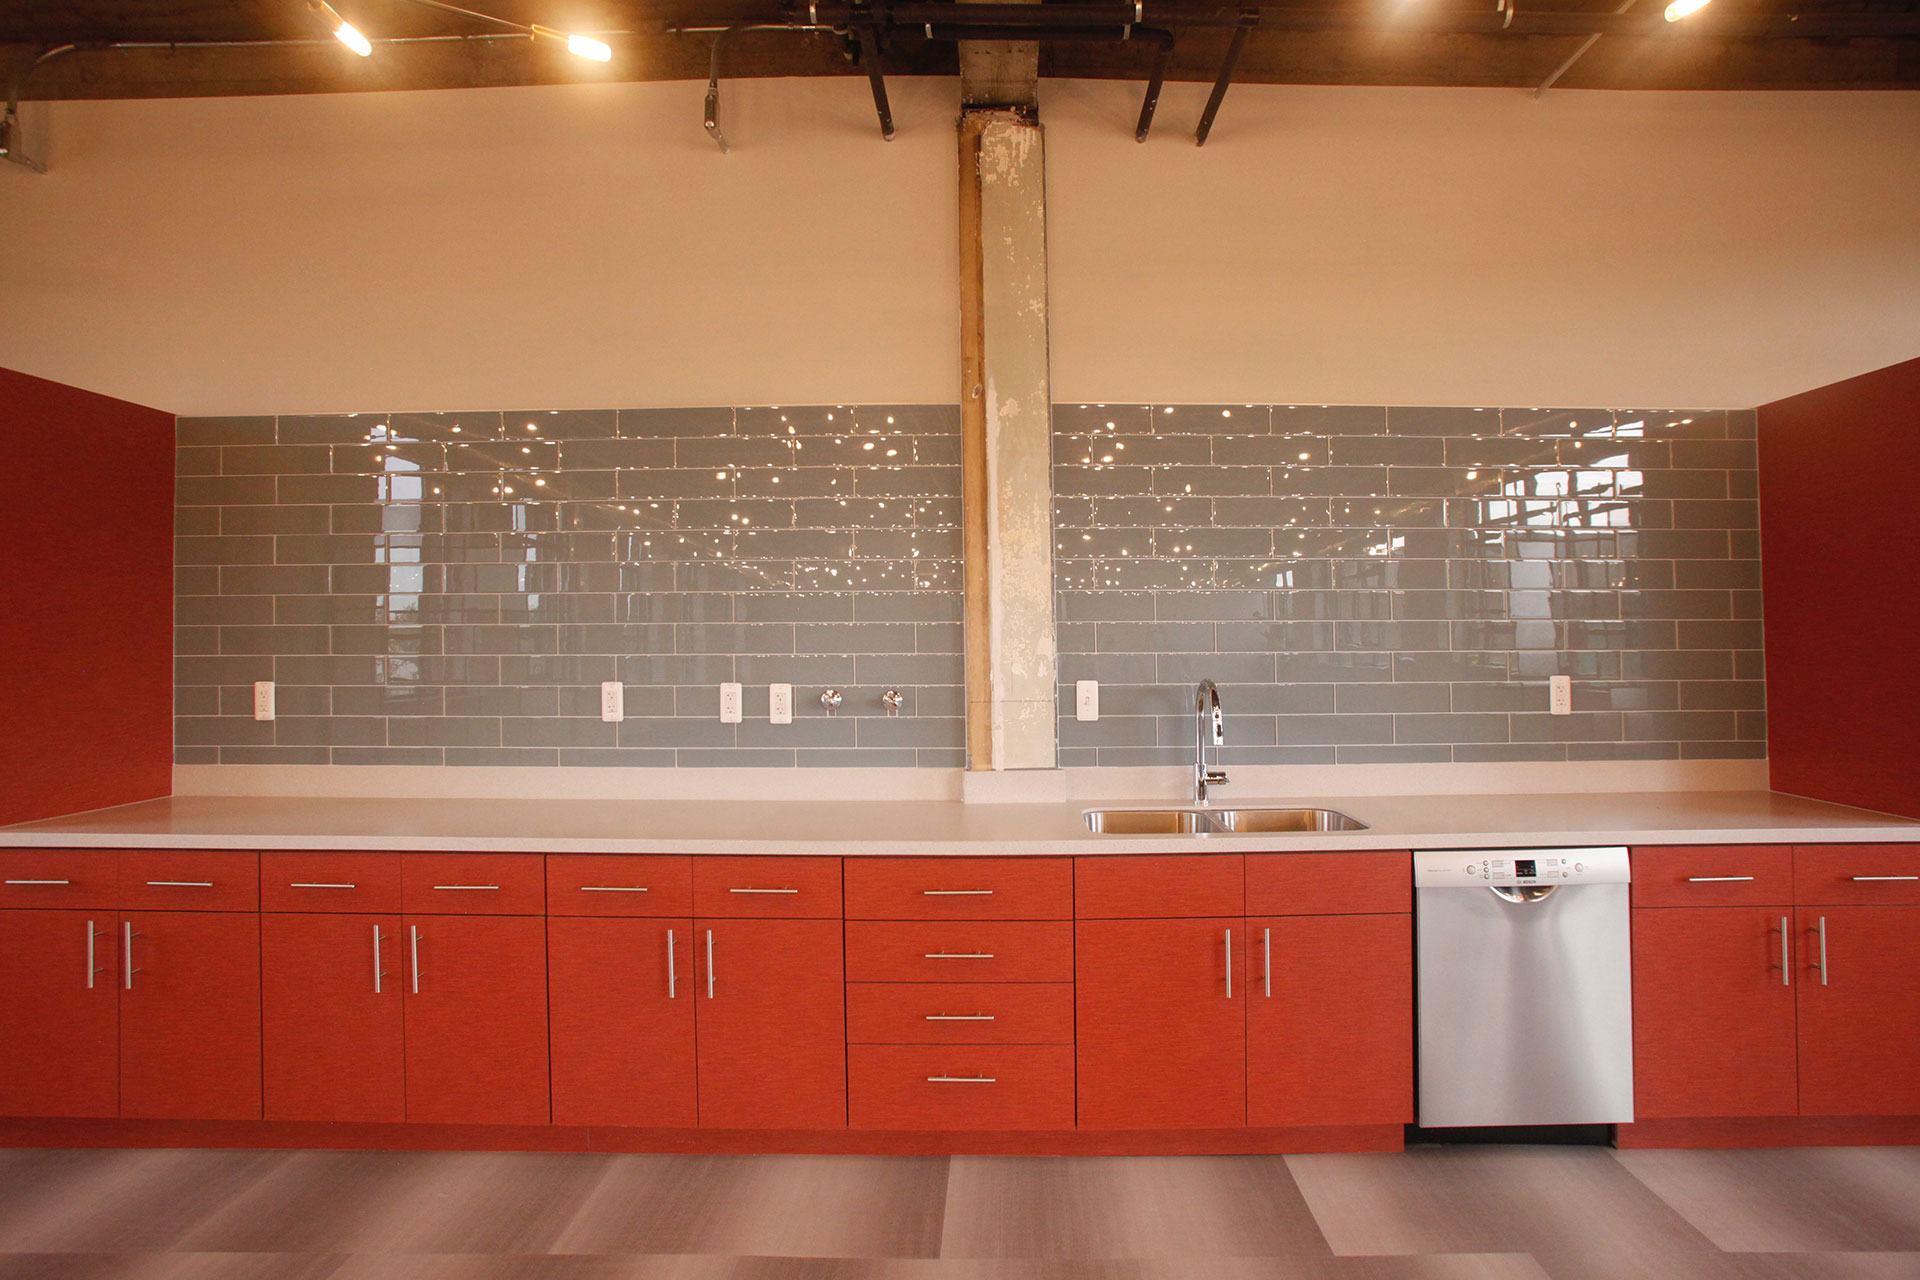 Plastic laminate cabinets, with solid surface countertops.